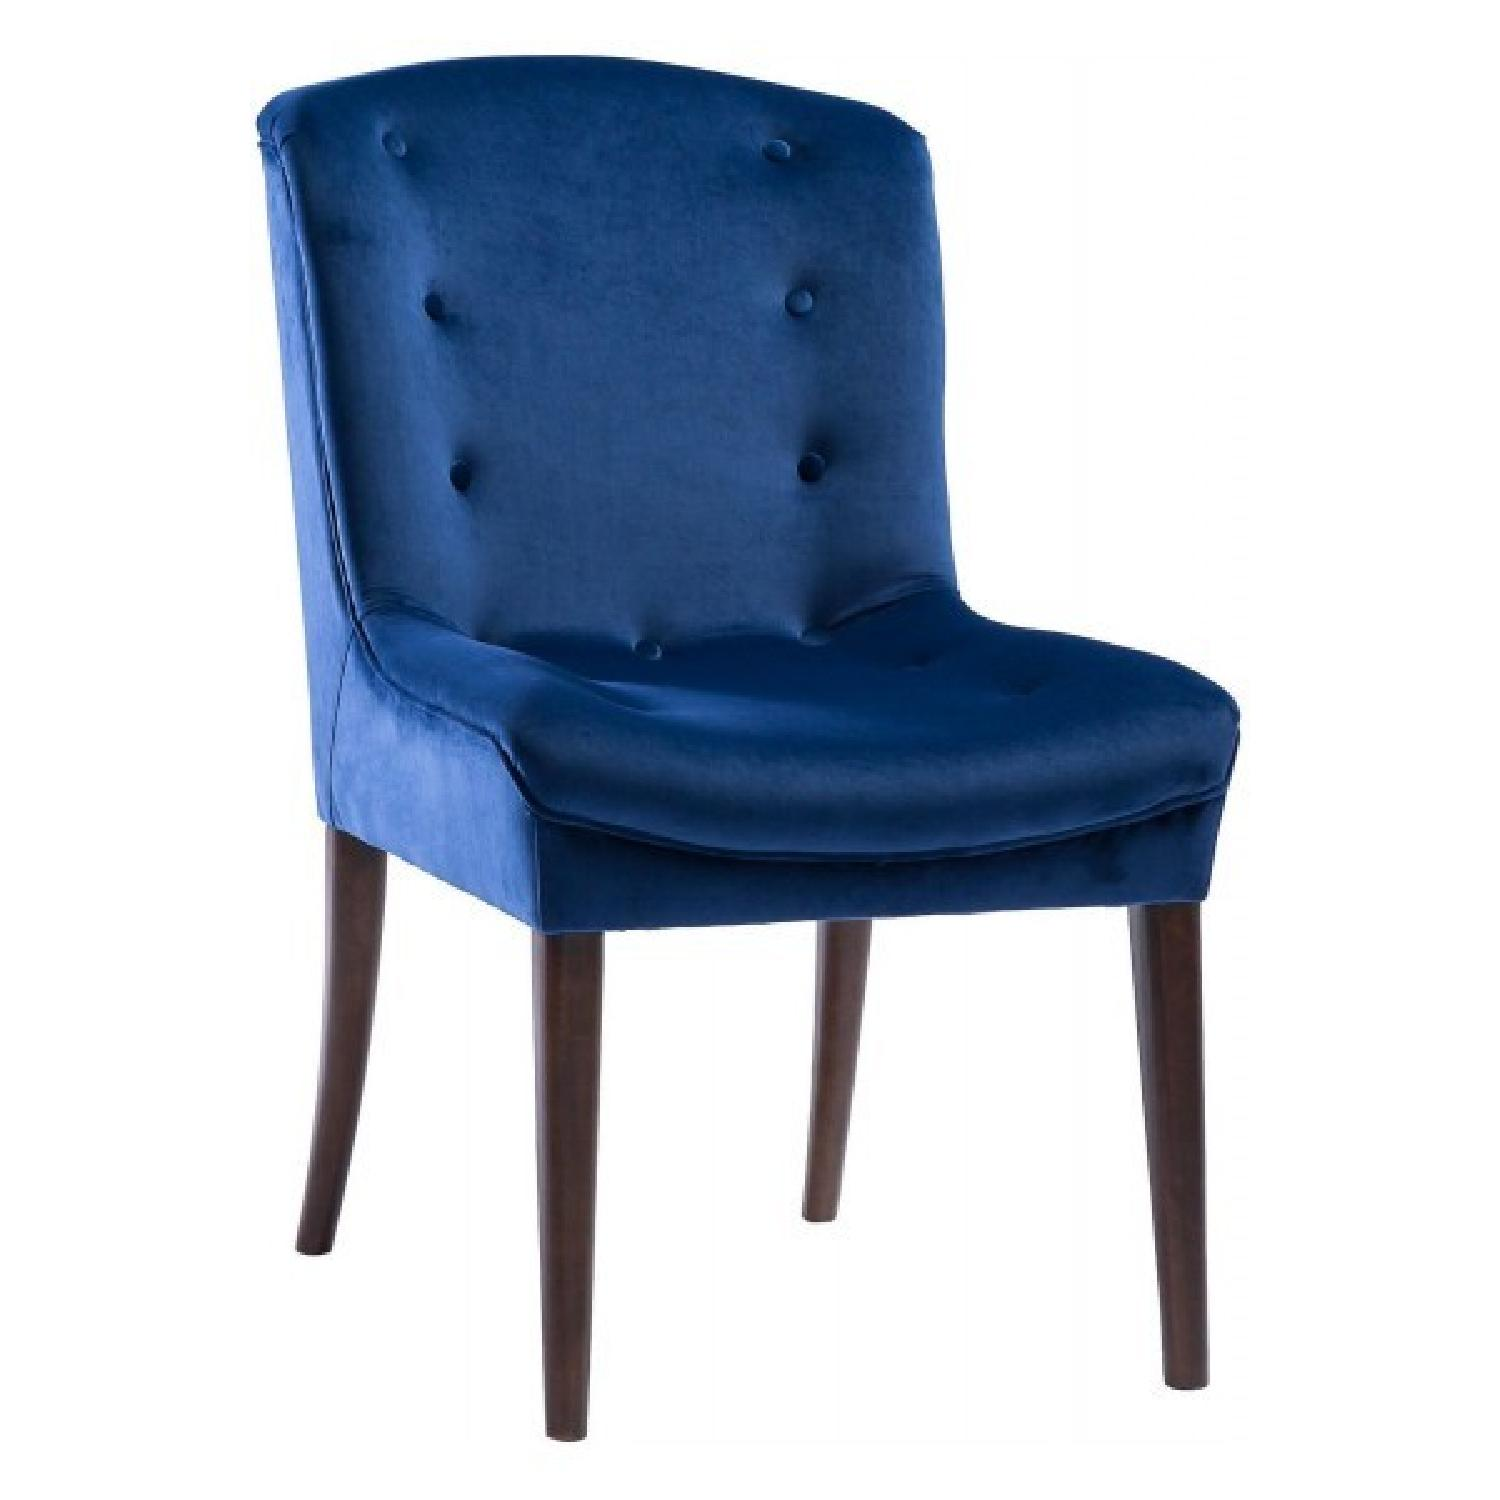 Popular TOV Furniture Victor Navy Velvet Chair - AptDeco FG04